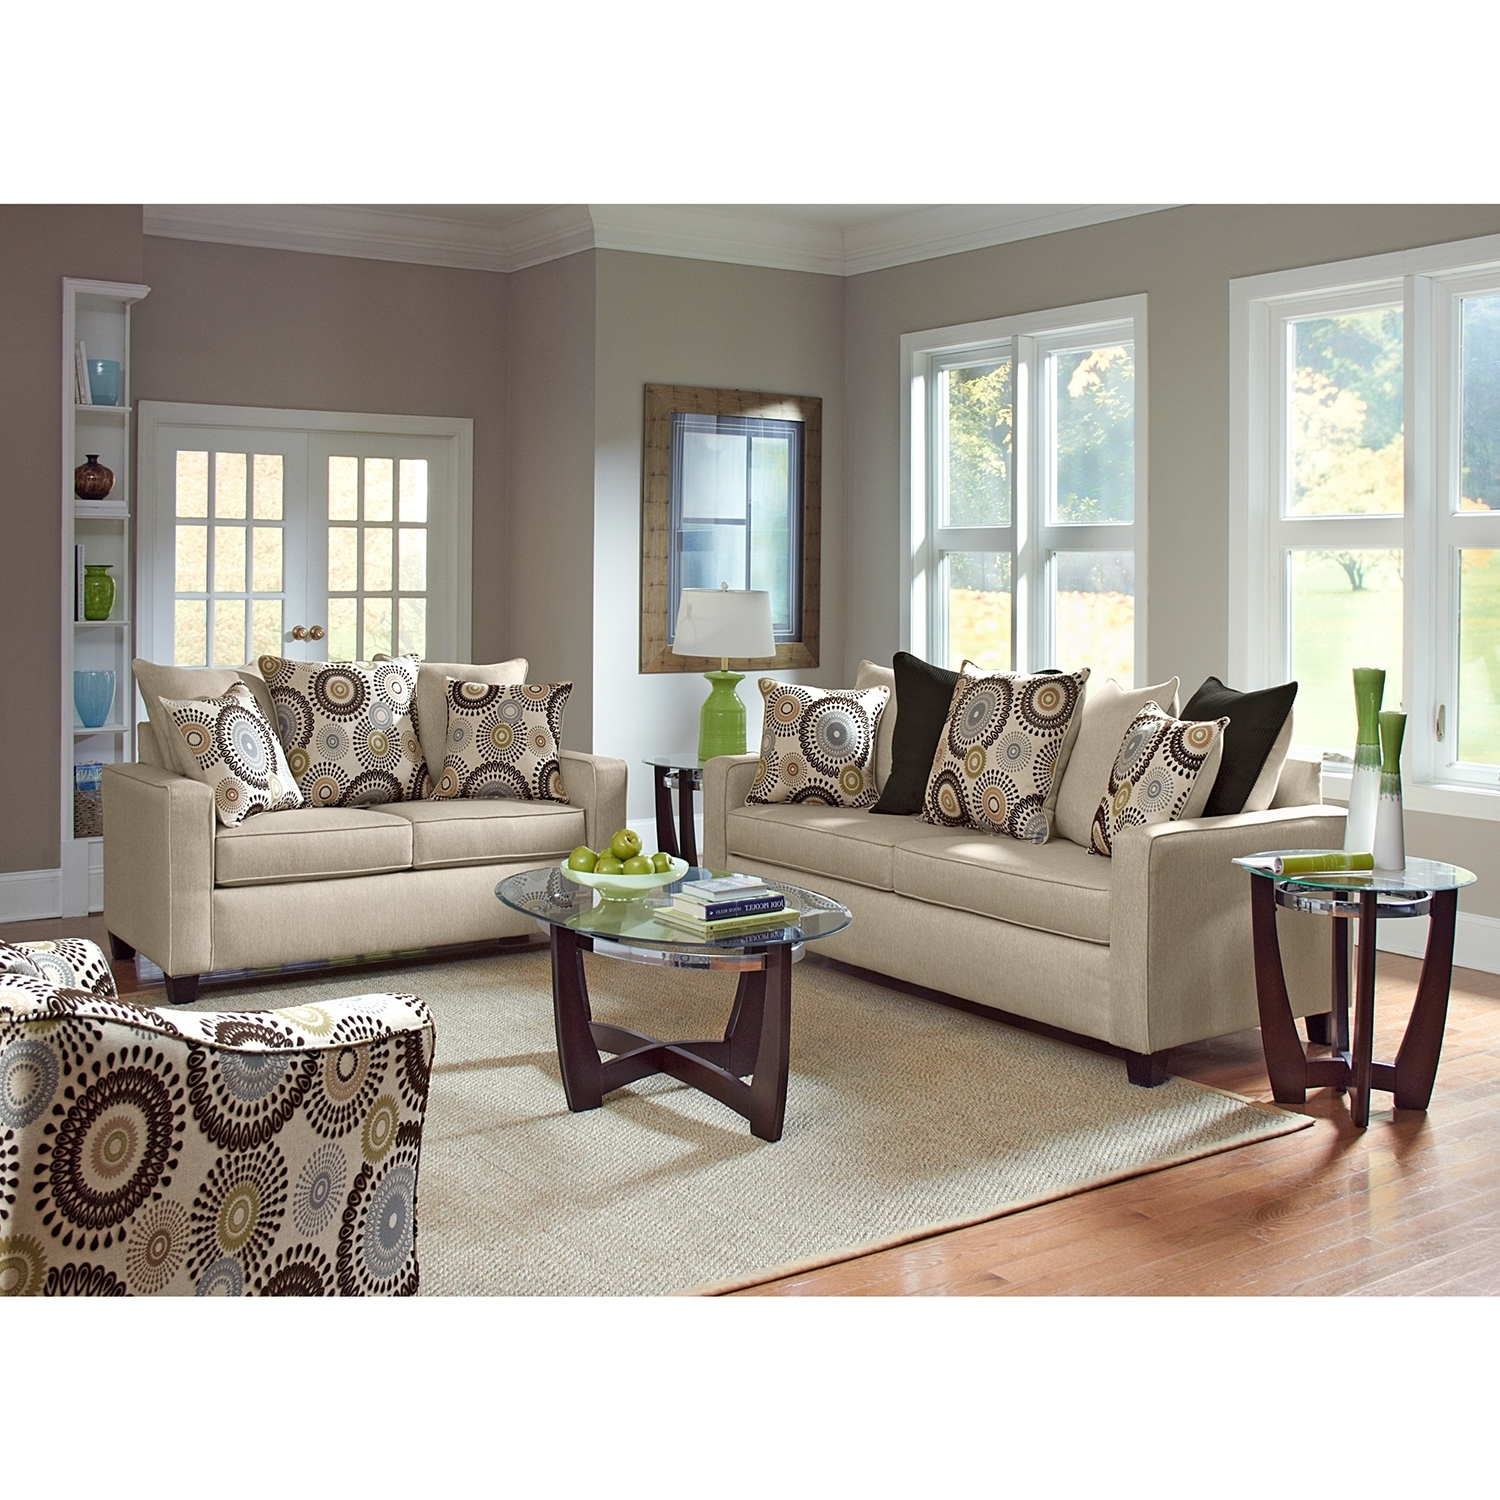 Value City Sofas Within Favorite Livingroom : Value City Furniture Living Room Chairs Tables Sofas (View 20 of 20)